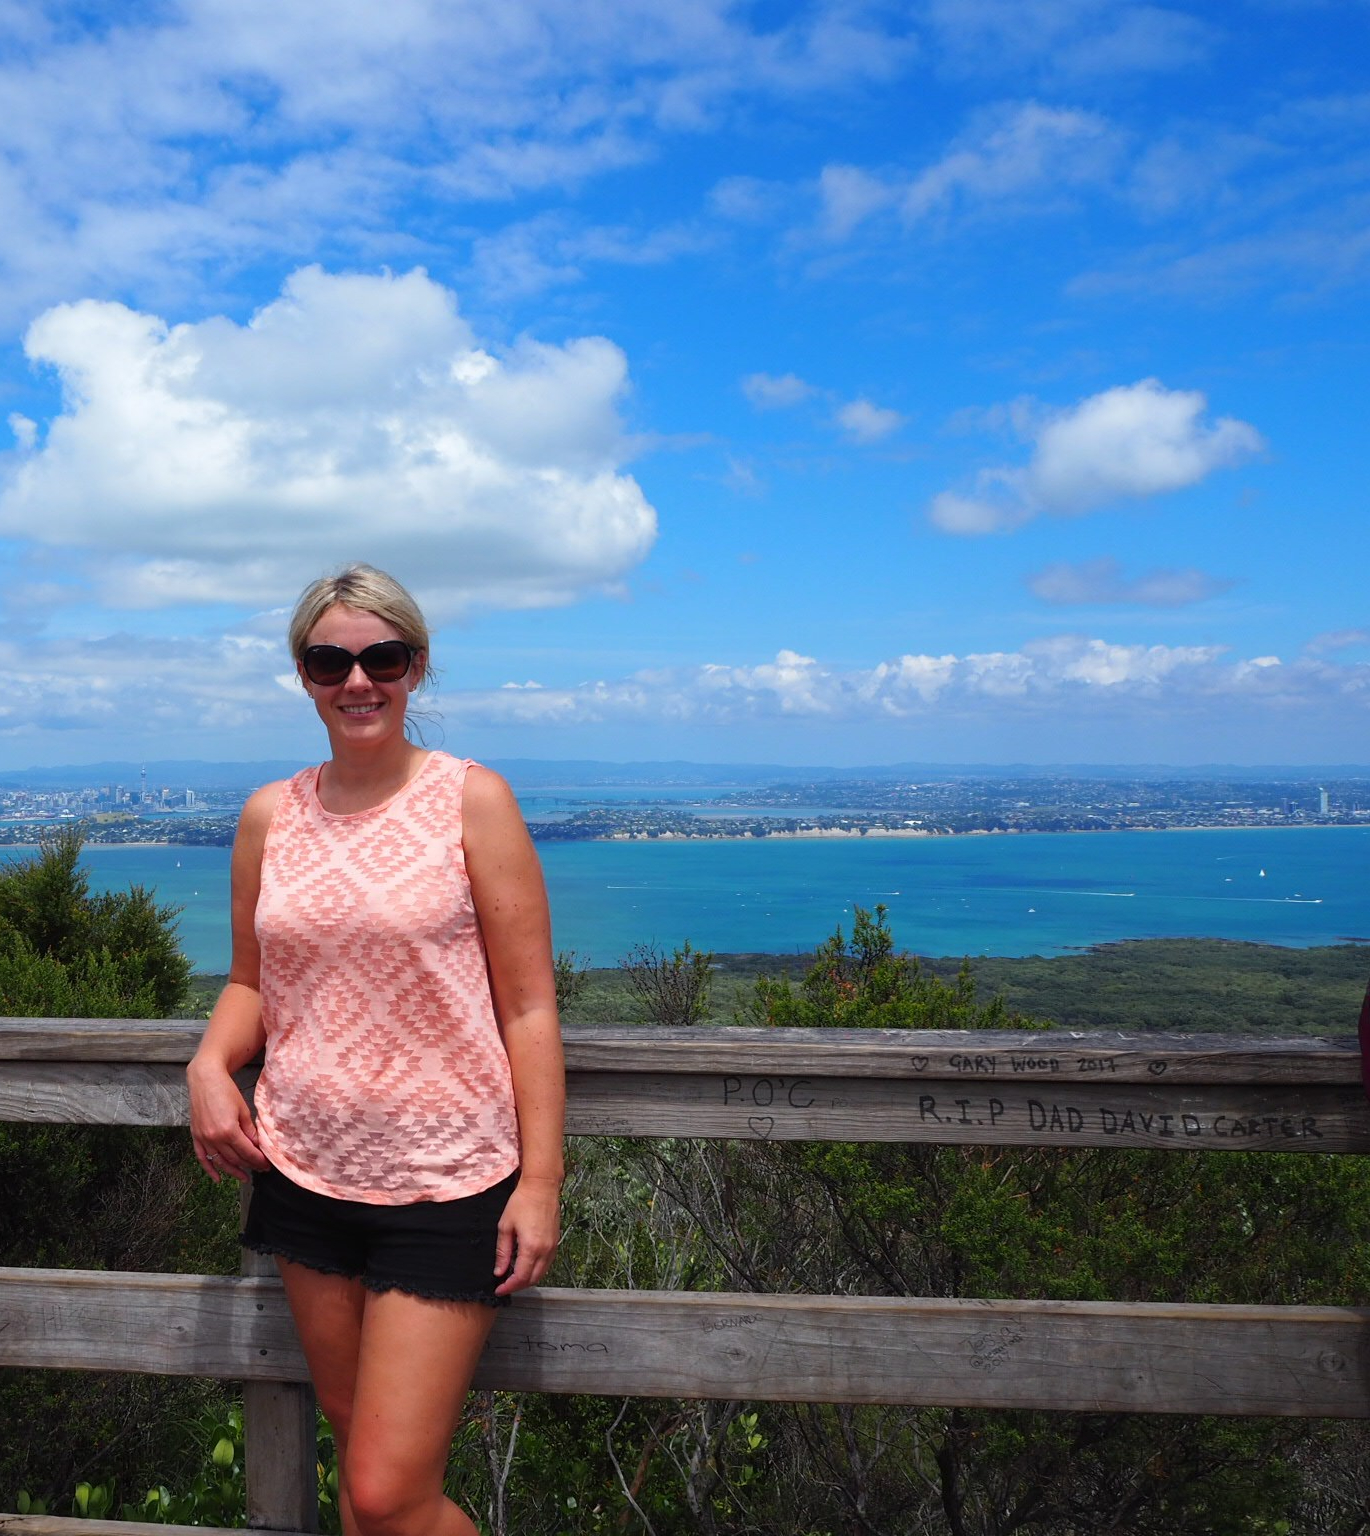 Rangitoto Summit